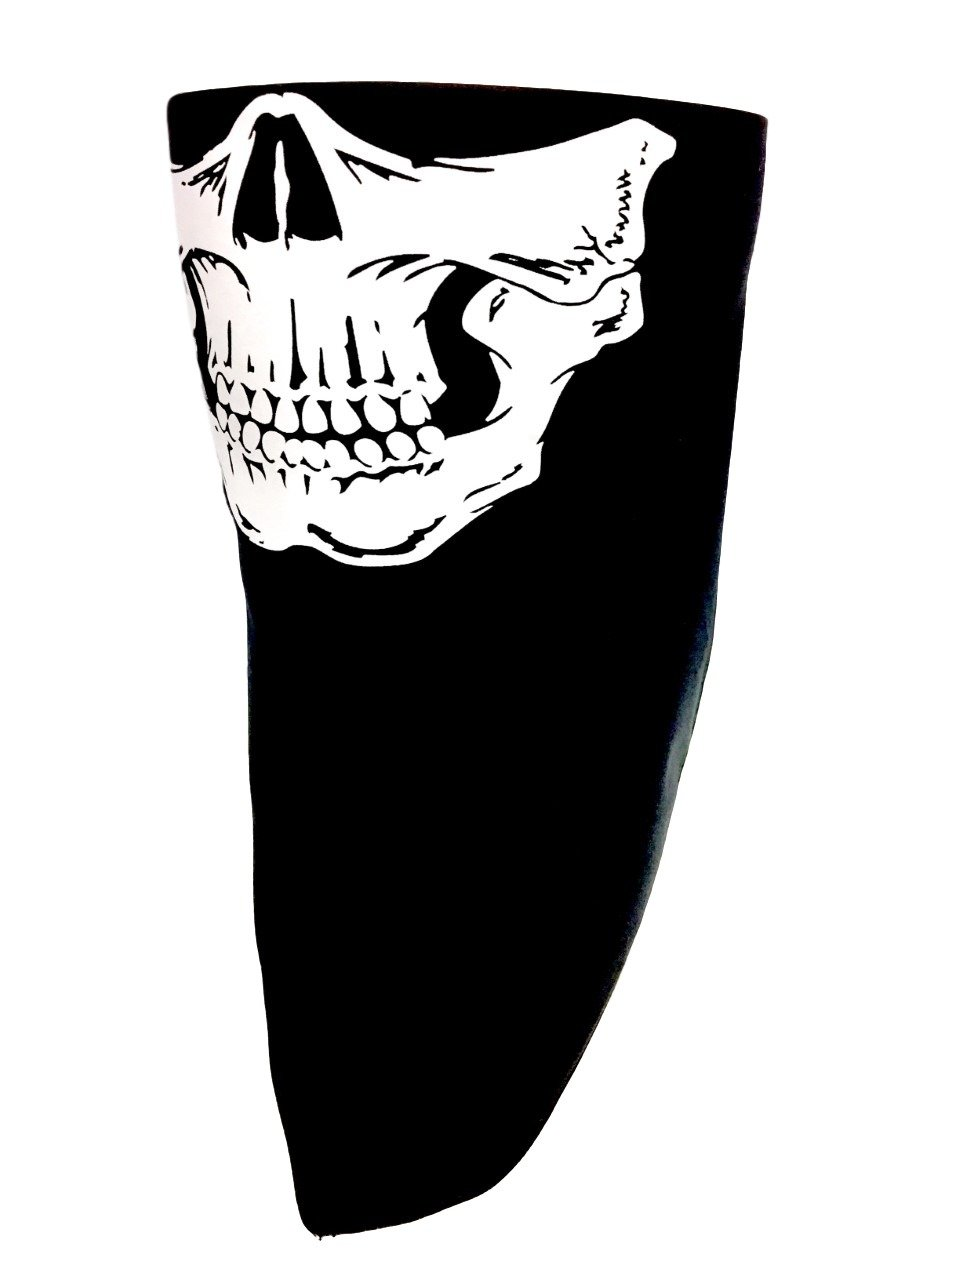 Black VELCRO®Brand Adjustable Close Custom Cotton Bandana Skull Face Reversible Biker Mask Costume Fits Youth and Adults Head Measurements 18 to 24 inches Circumference